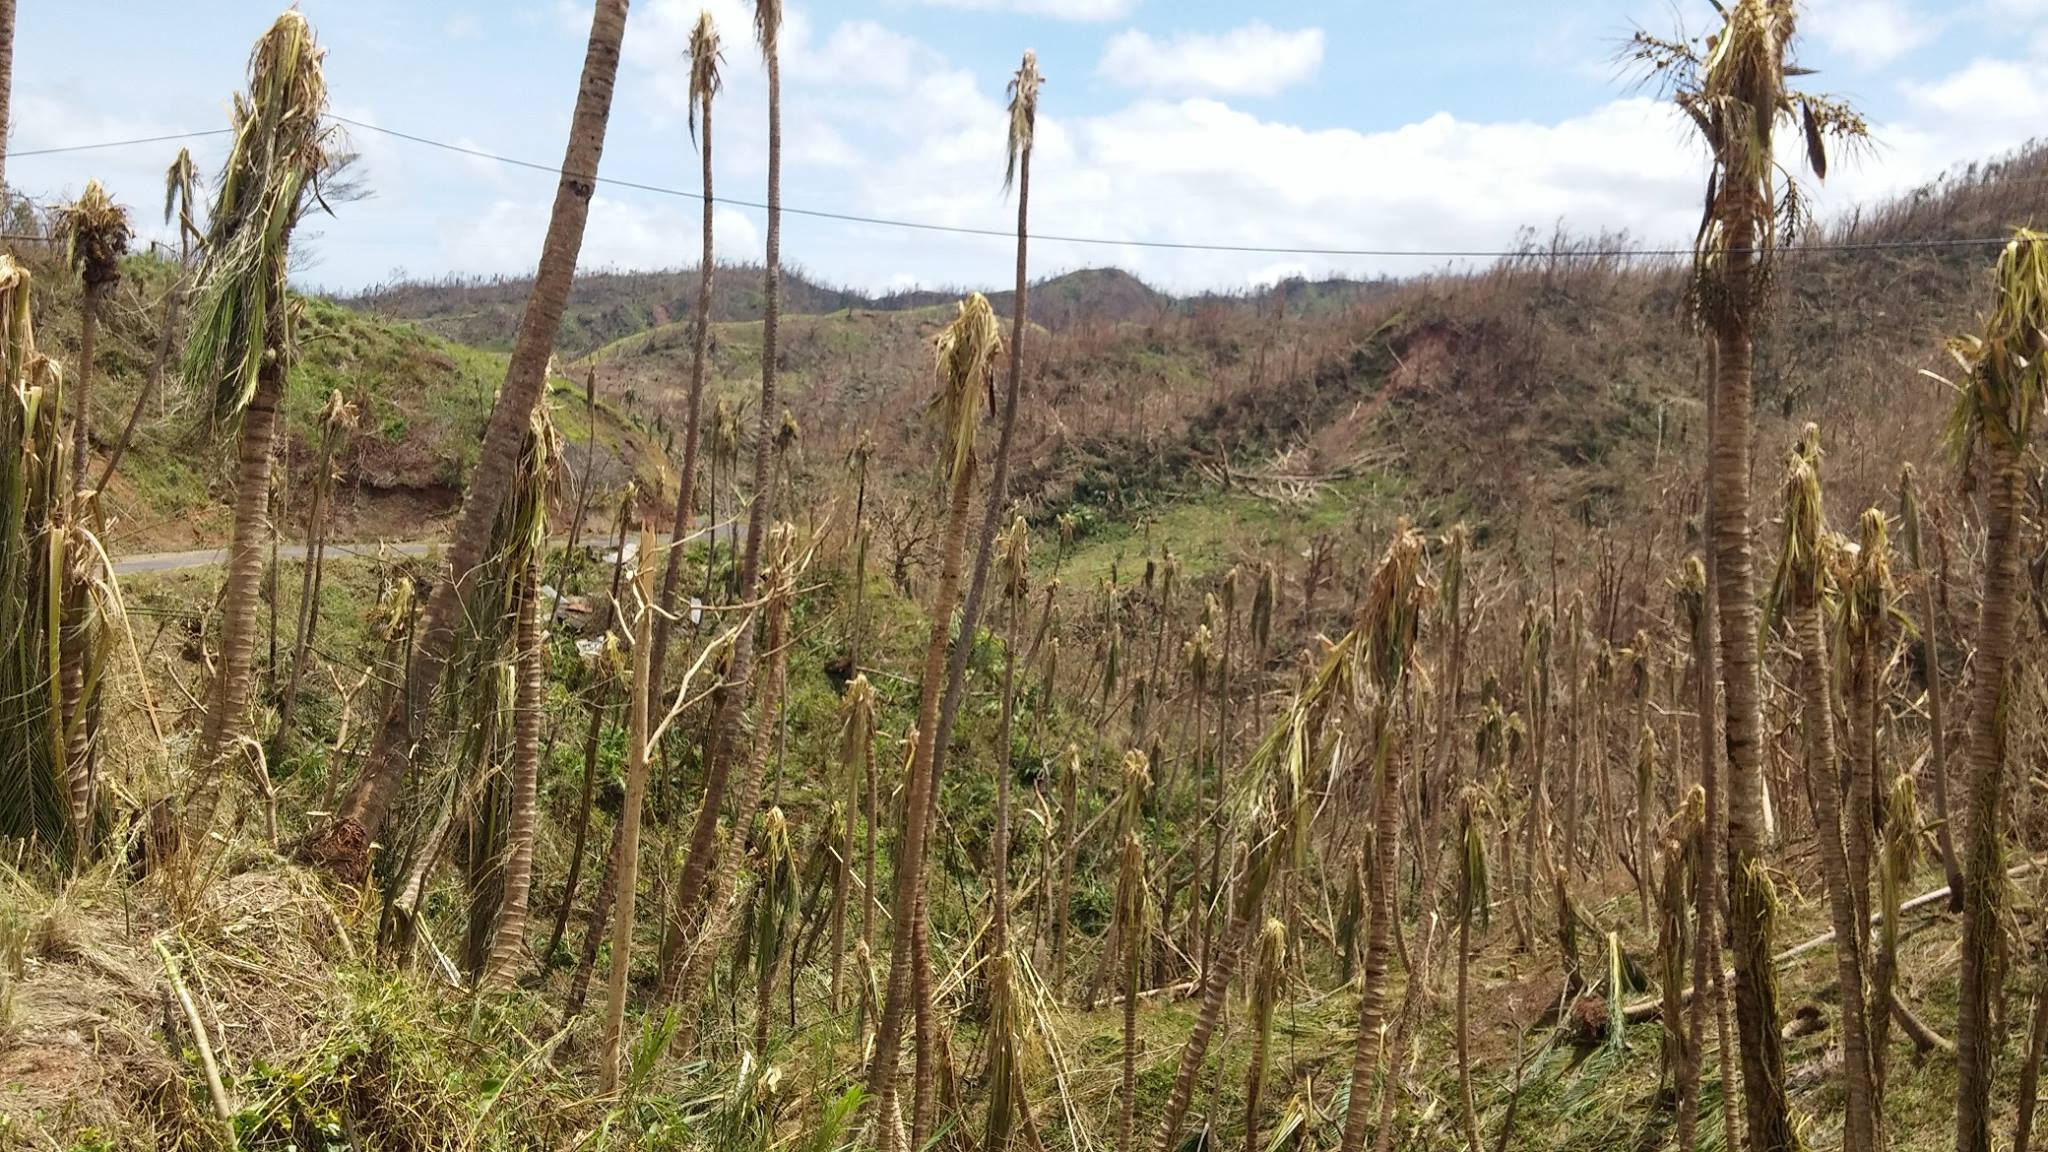 Barren landscape after Hurricane Maria struck Dominica